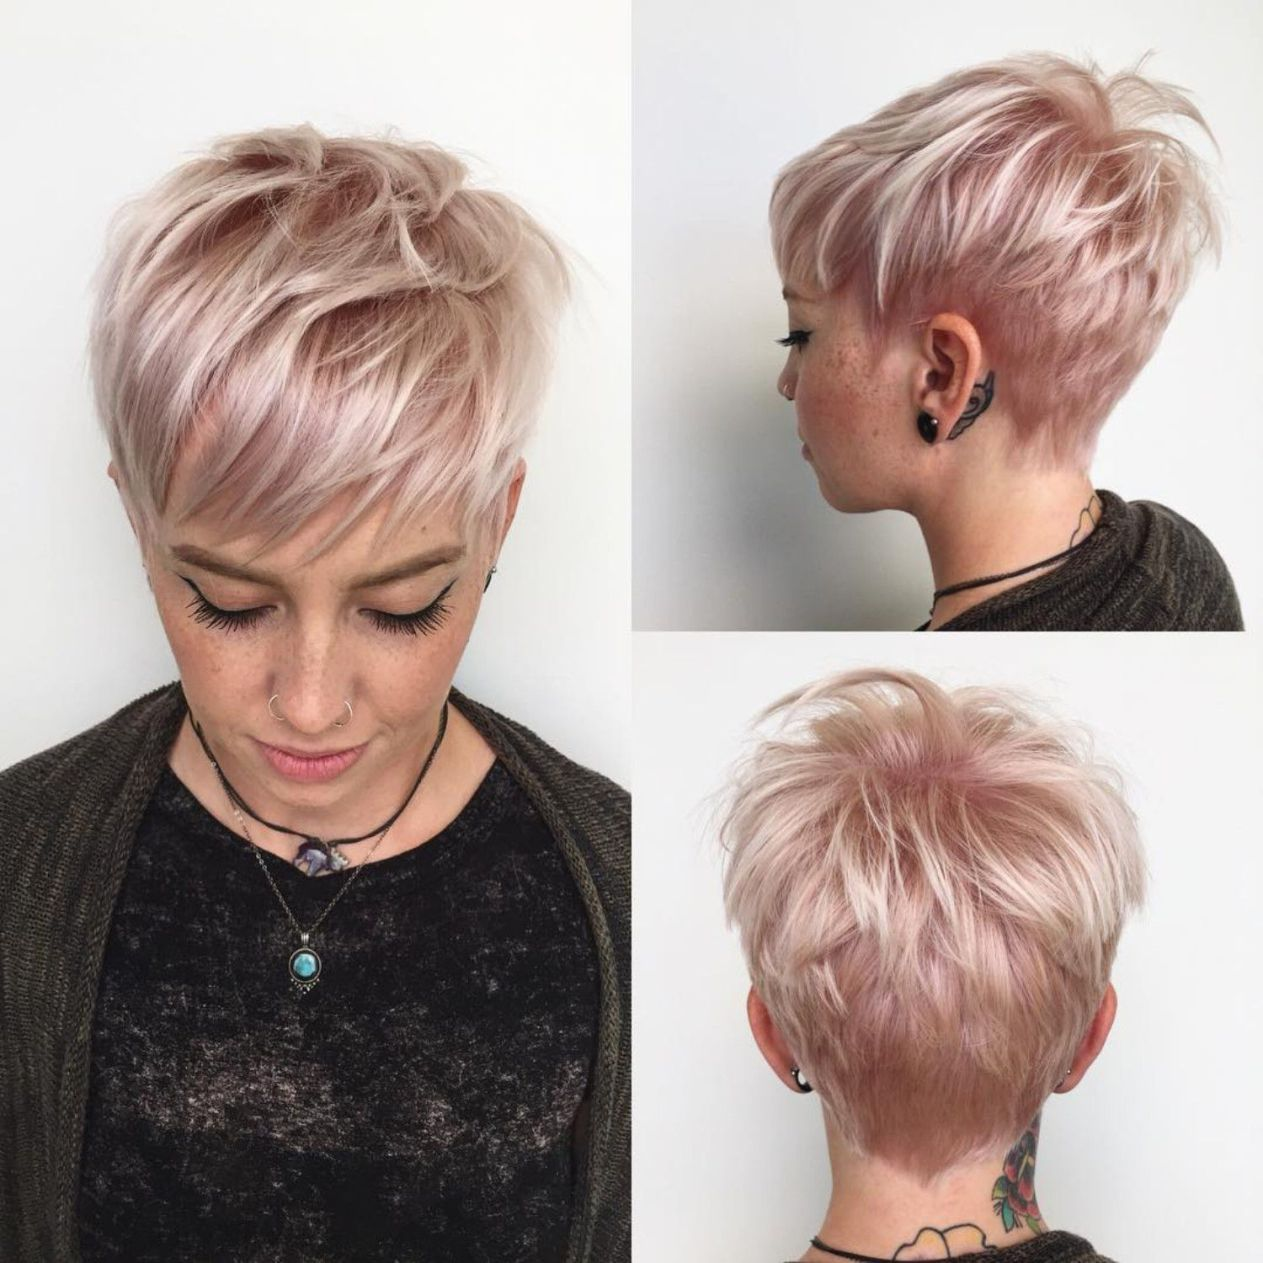 100 Mind Blowing Short Hairstyles For Fine Hair Short Hairstyles Fine Short Pixie Haircuts Fine Hair